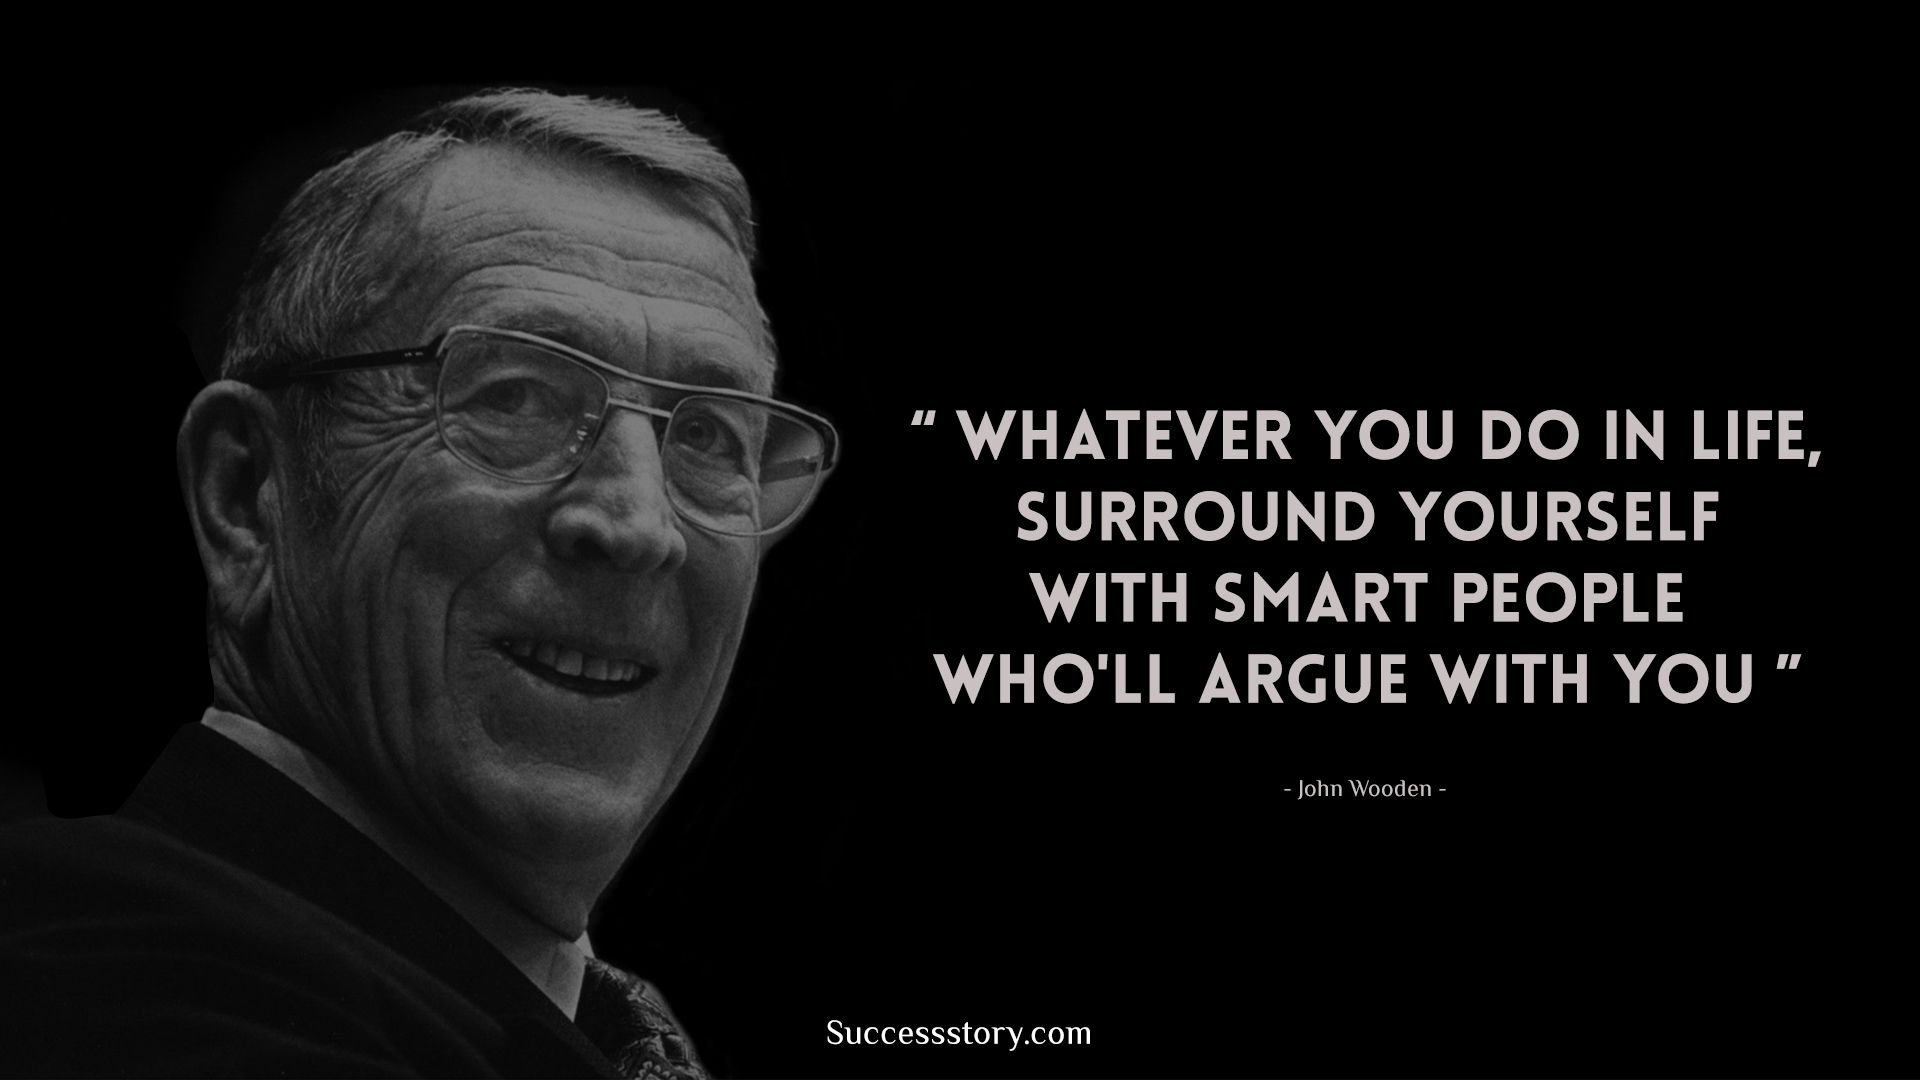 John Wooden Quotes Famous Quotes John wooden quotes